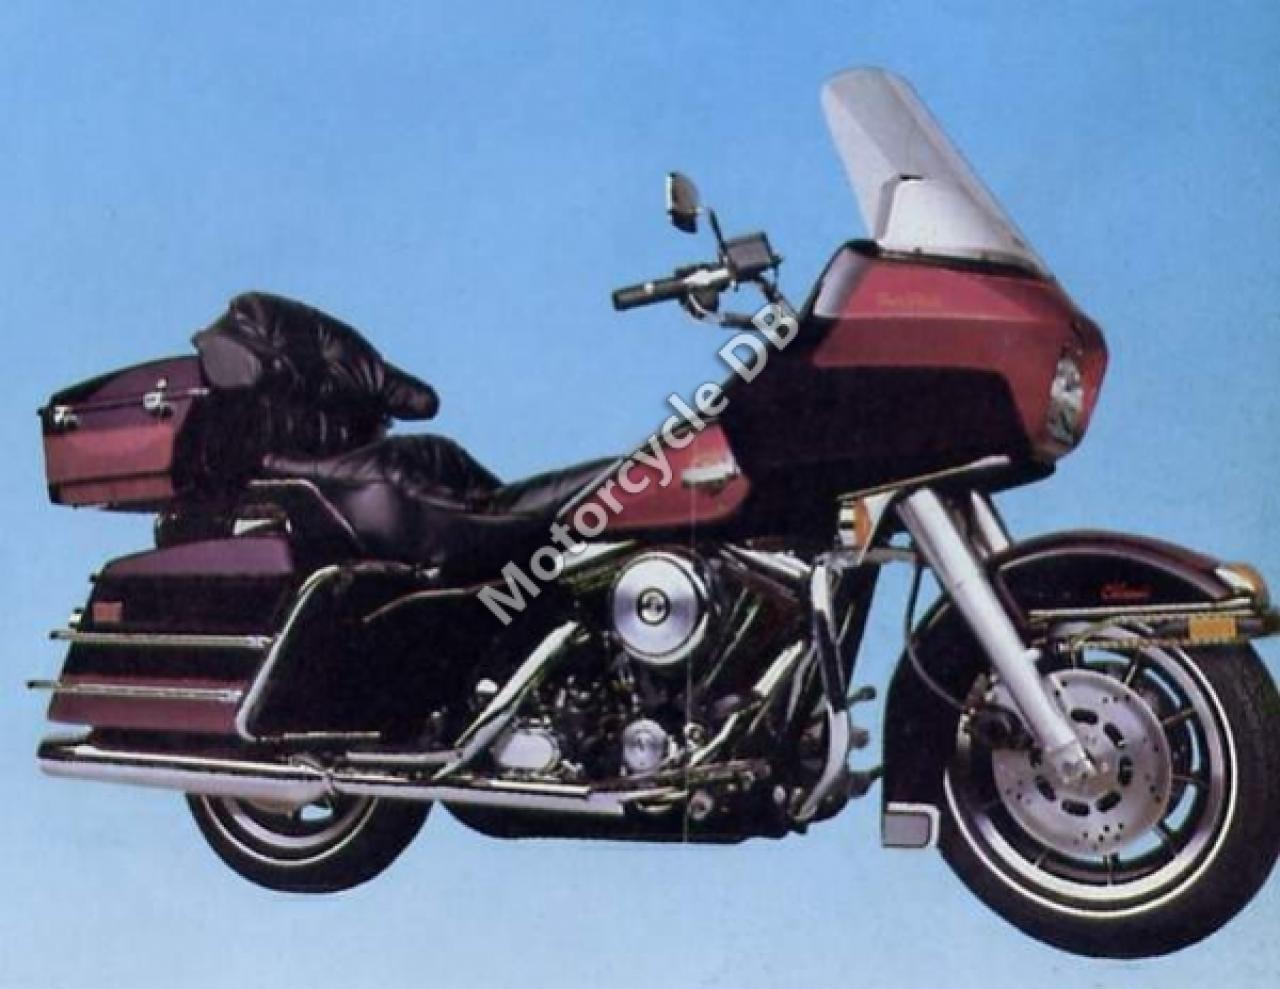 1991 Harley-Davidson Tour Glide Ultra Classic (reduced